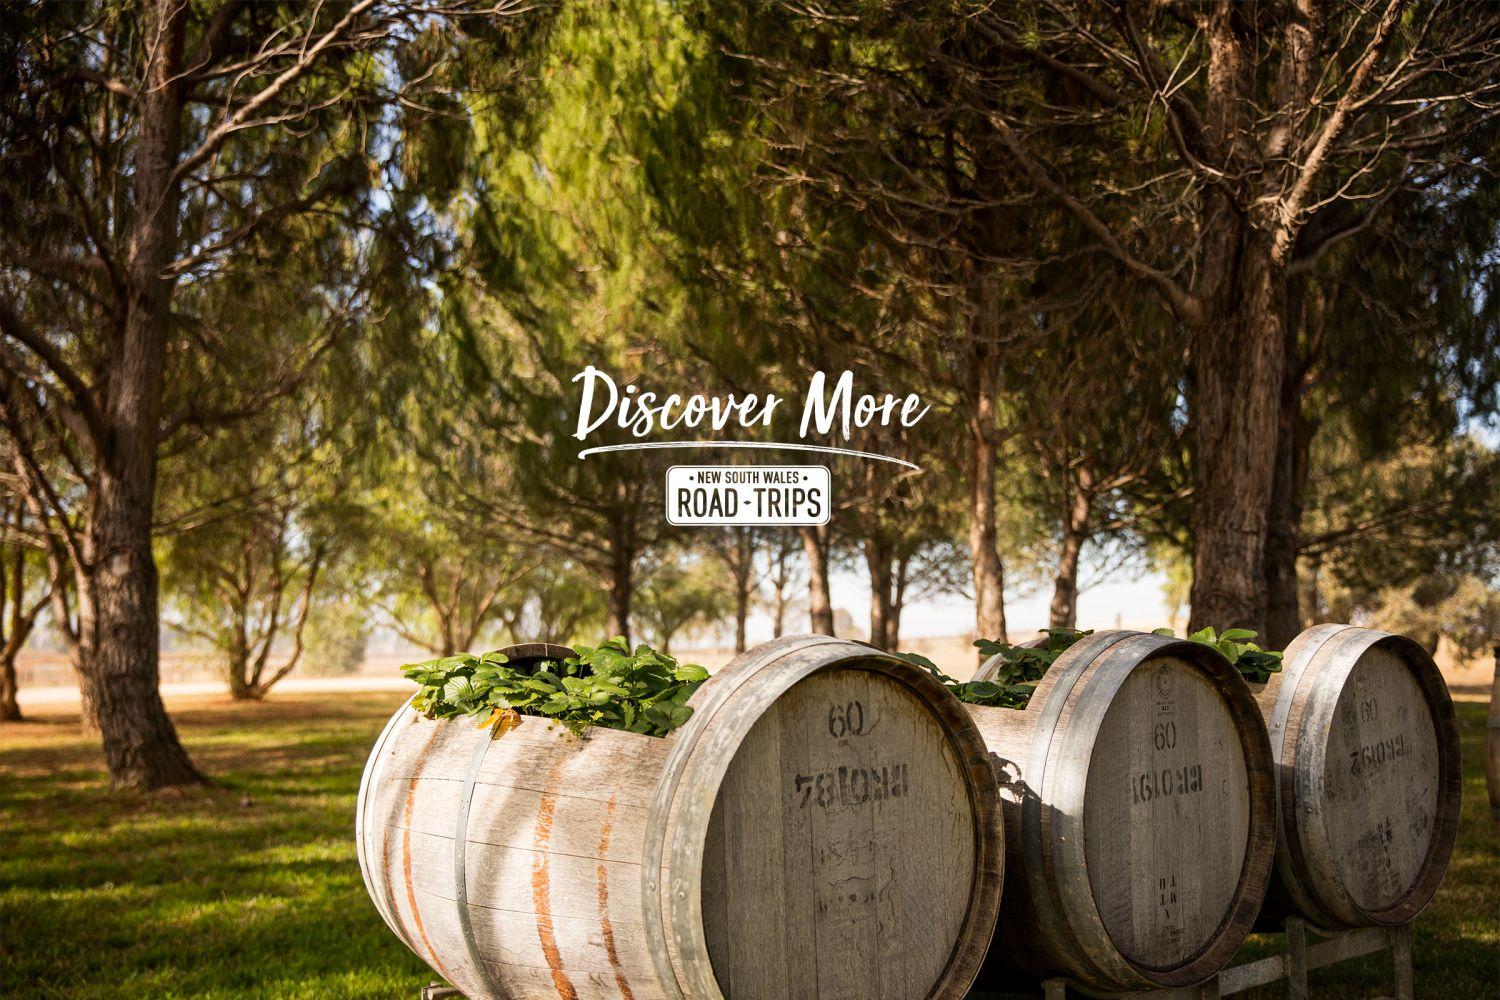 Barrel gardens at Lowe Wines in Mudgee